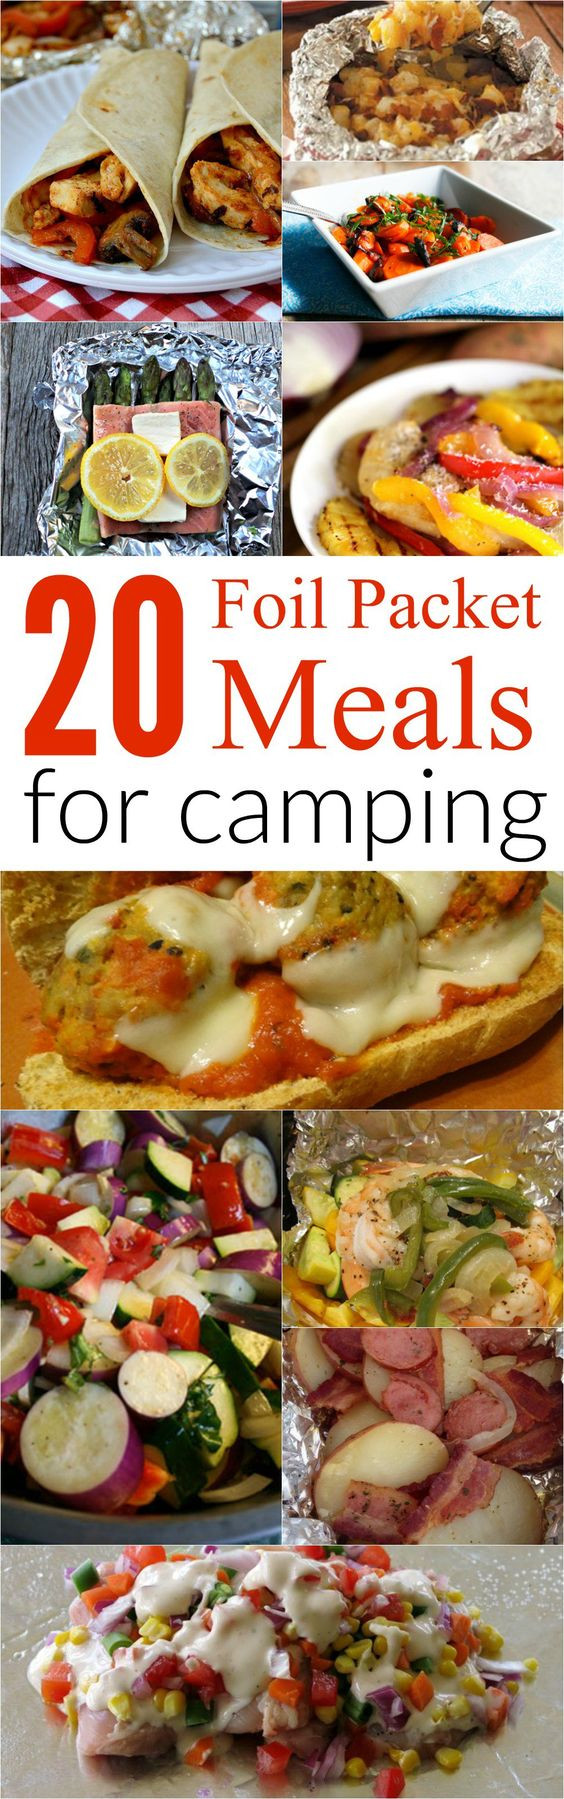 Foil Packet Dinners Camping  Top 20 Foil Meal Packet Recipes for Camping Great on the